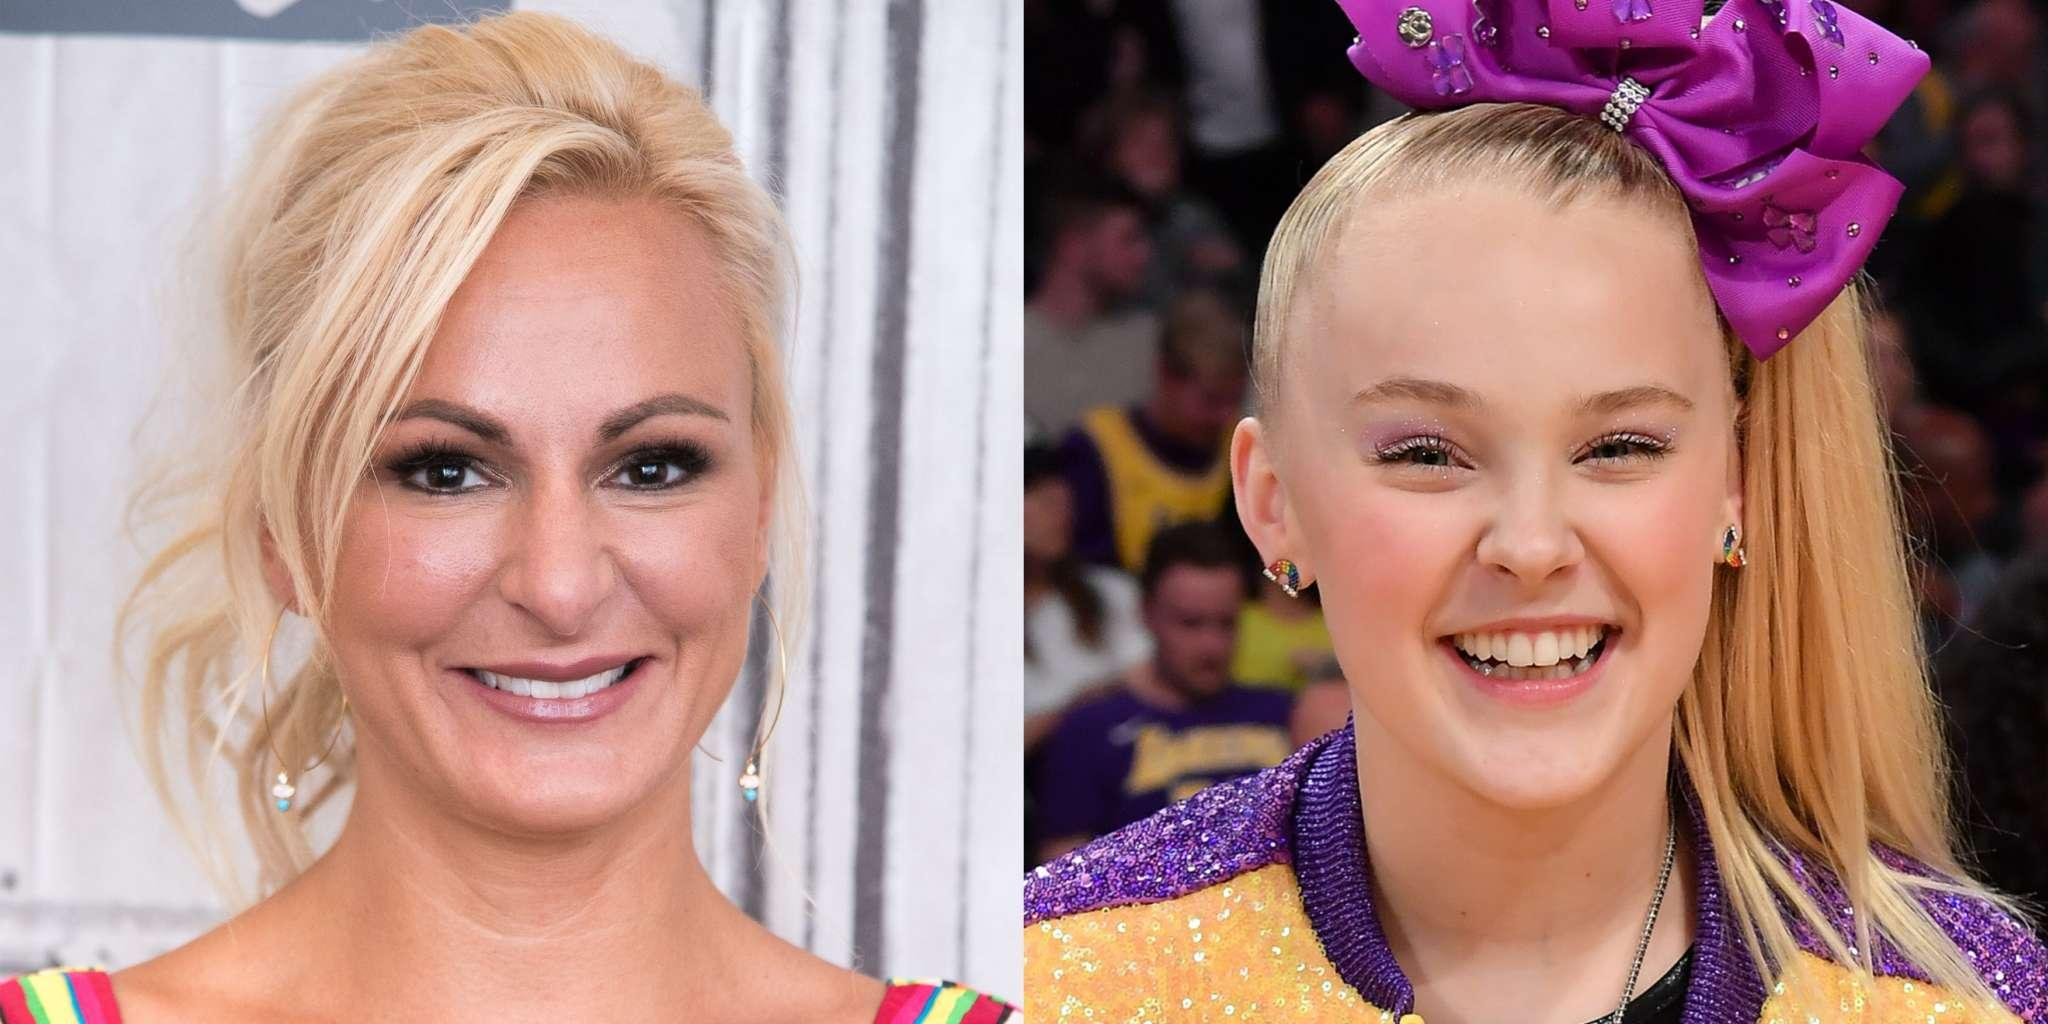 Jojo Siwa Calls Out Christi Lukasiak For Making 'Disgusting, Ignorant' Comment About Former 'Dance Moms' Choreographer And Christi Claps Back!